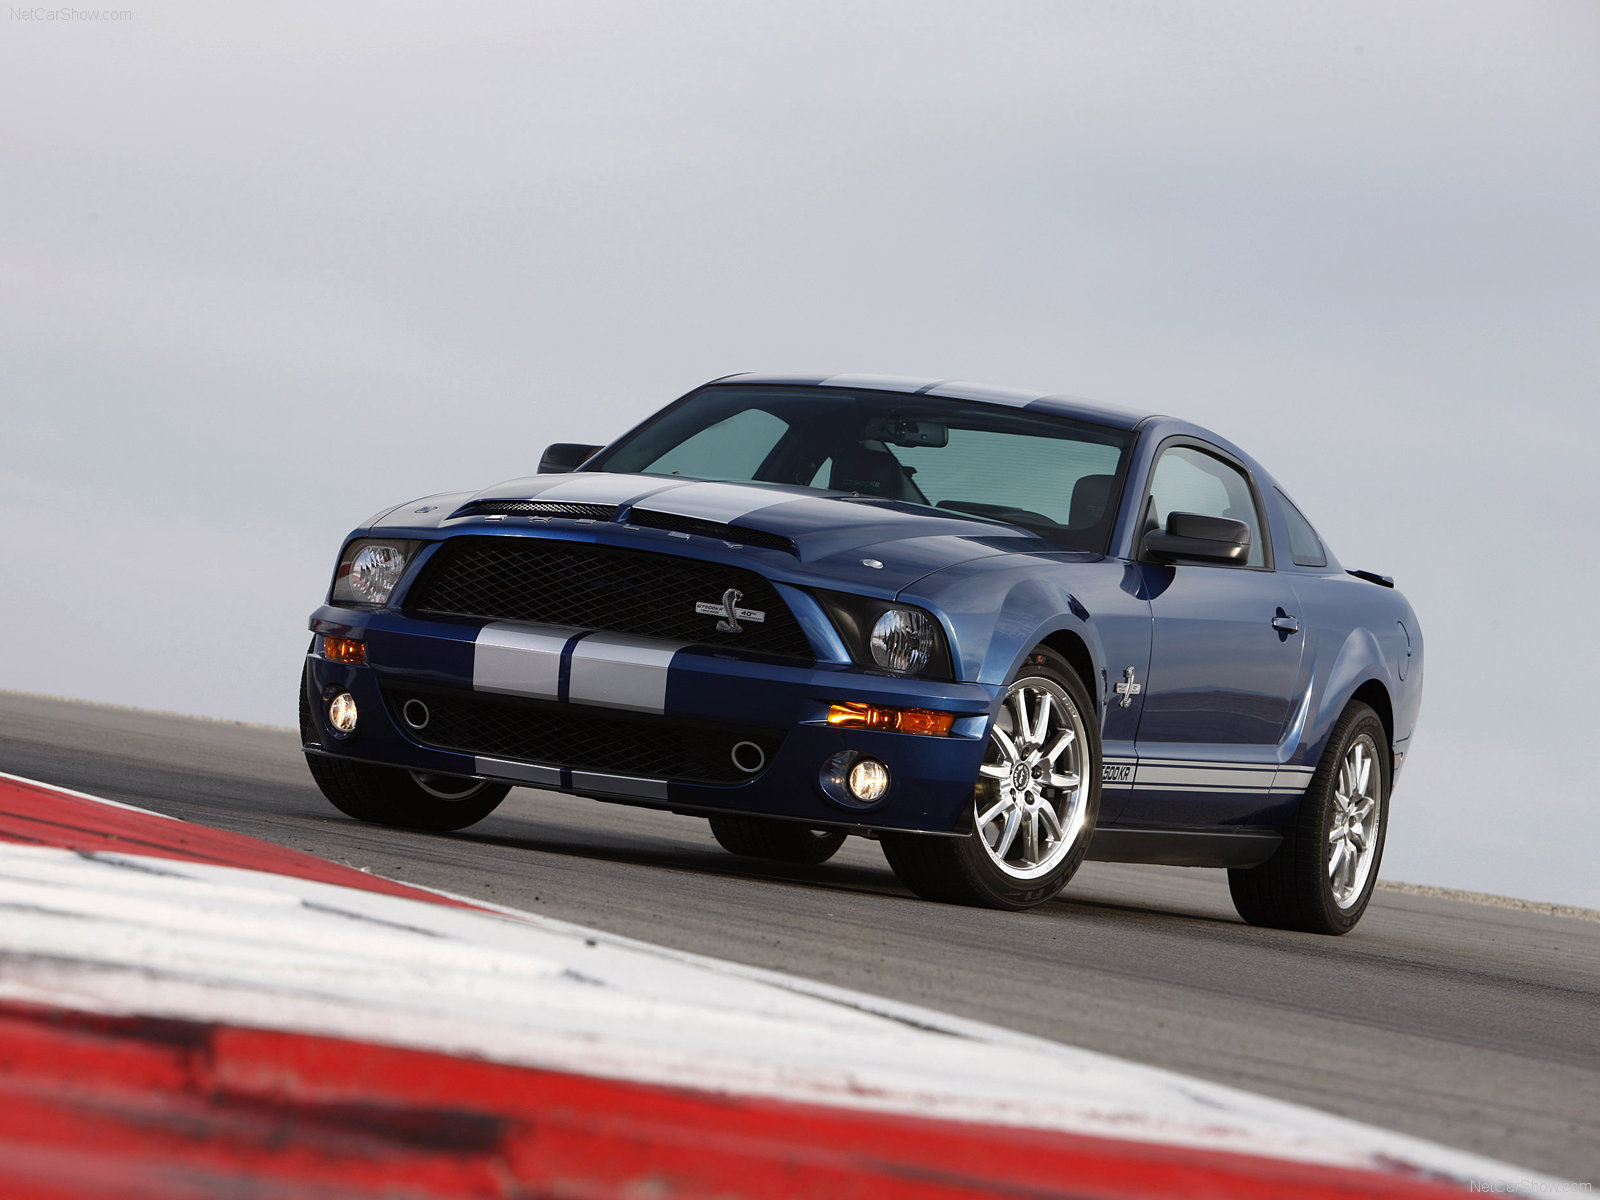 Ford Mustang Shelby GT500KR photo 54440